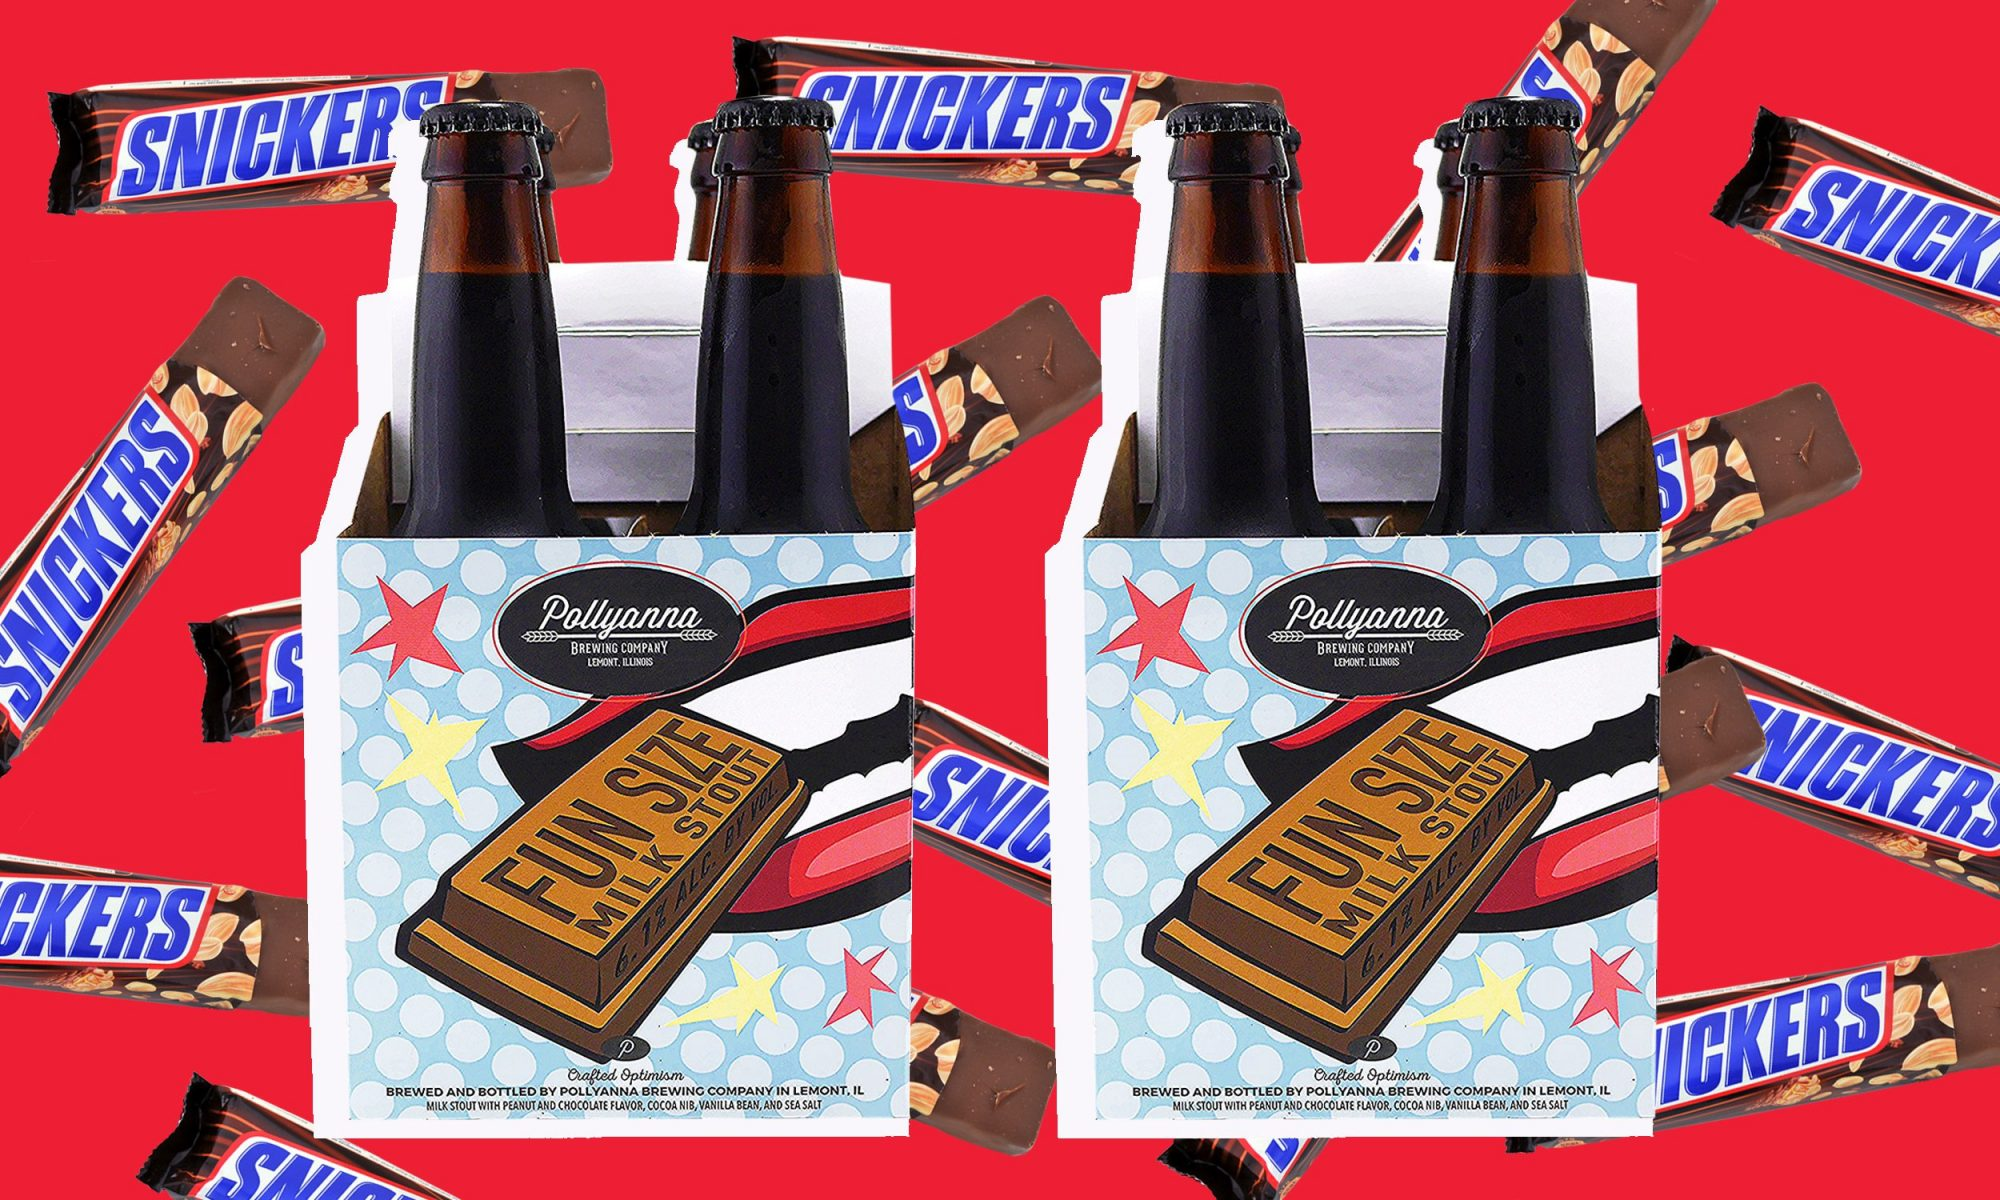 EC: This Beer Is Supposed to Taste Exactly Like a Snickers Bar